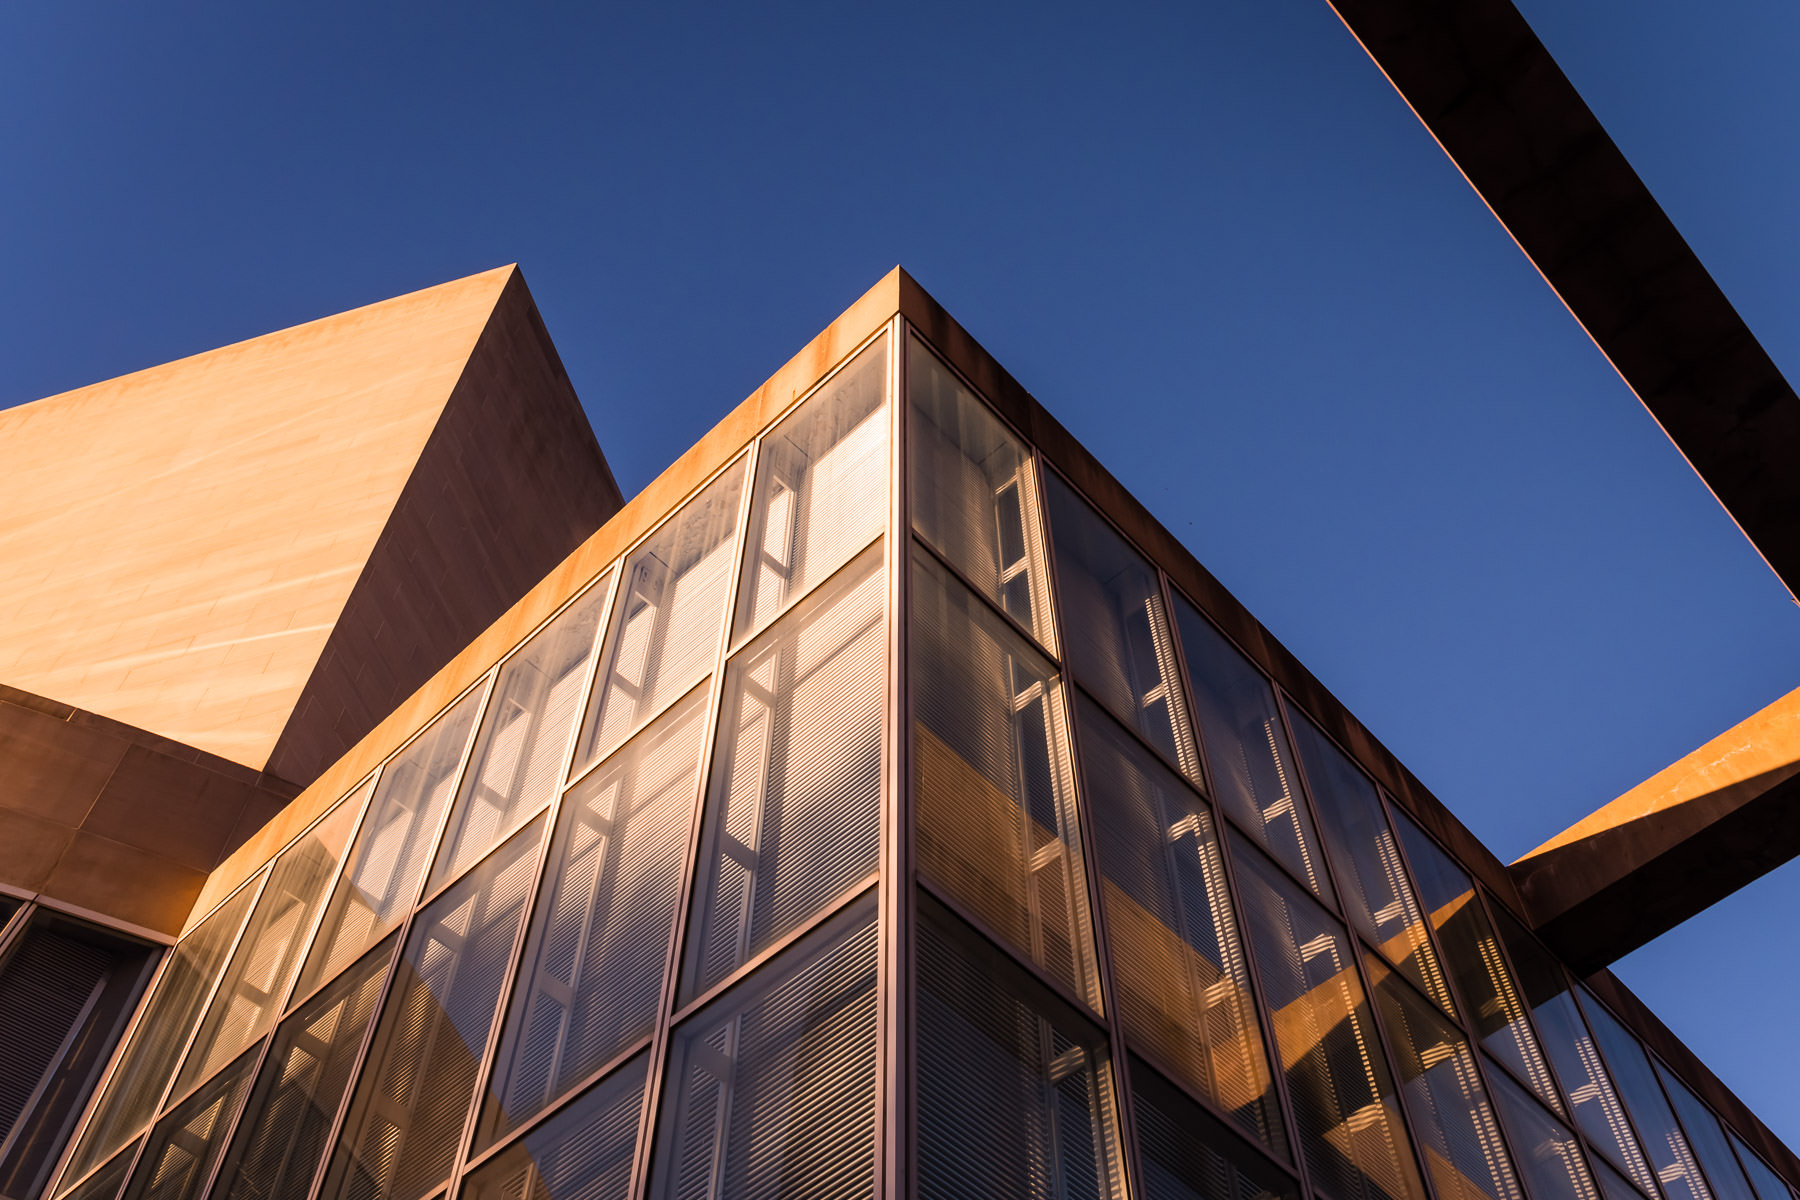 Evening sunlight illuminates the Meyerson Symphony Center in the Dallas Arts District.